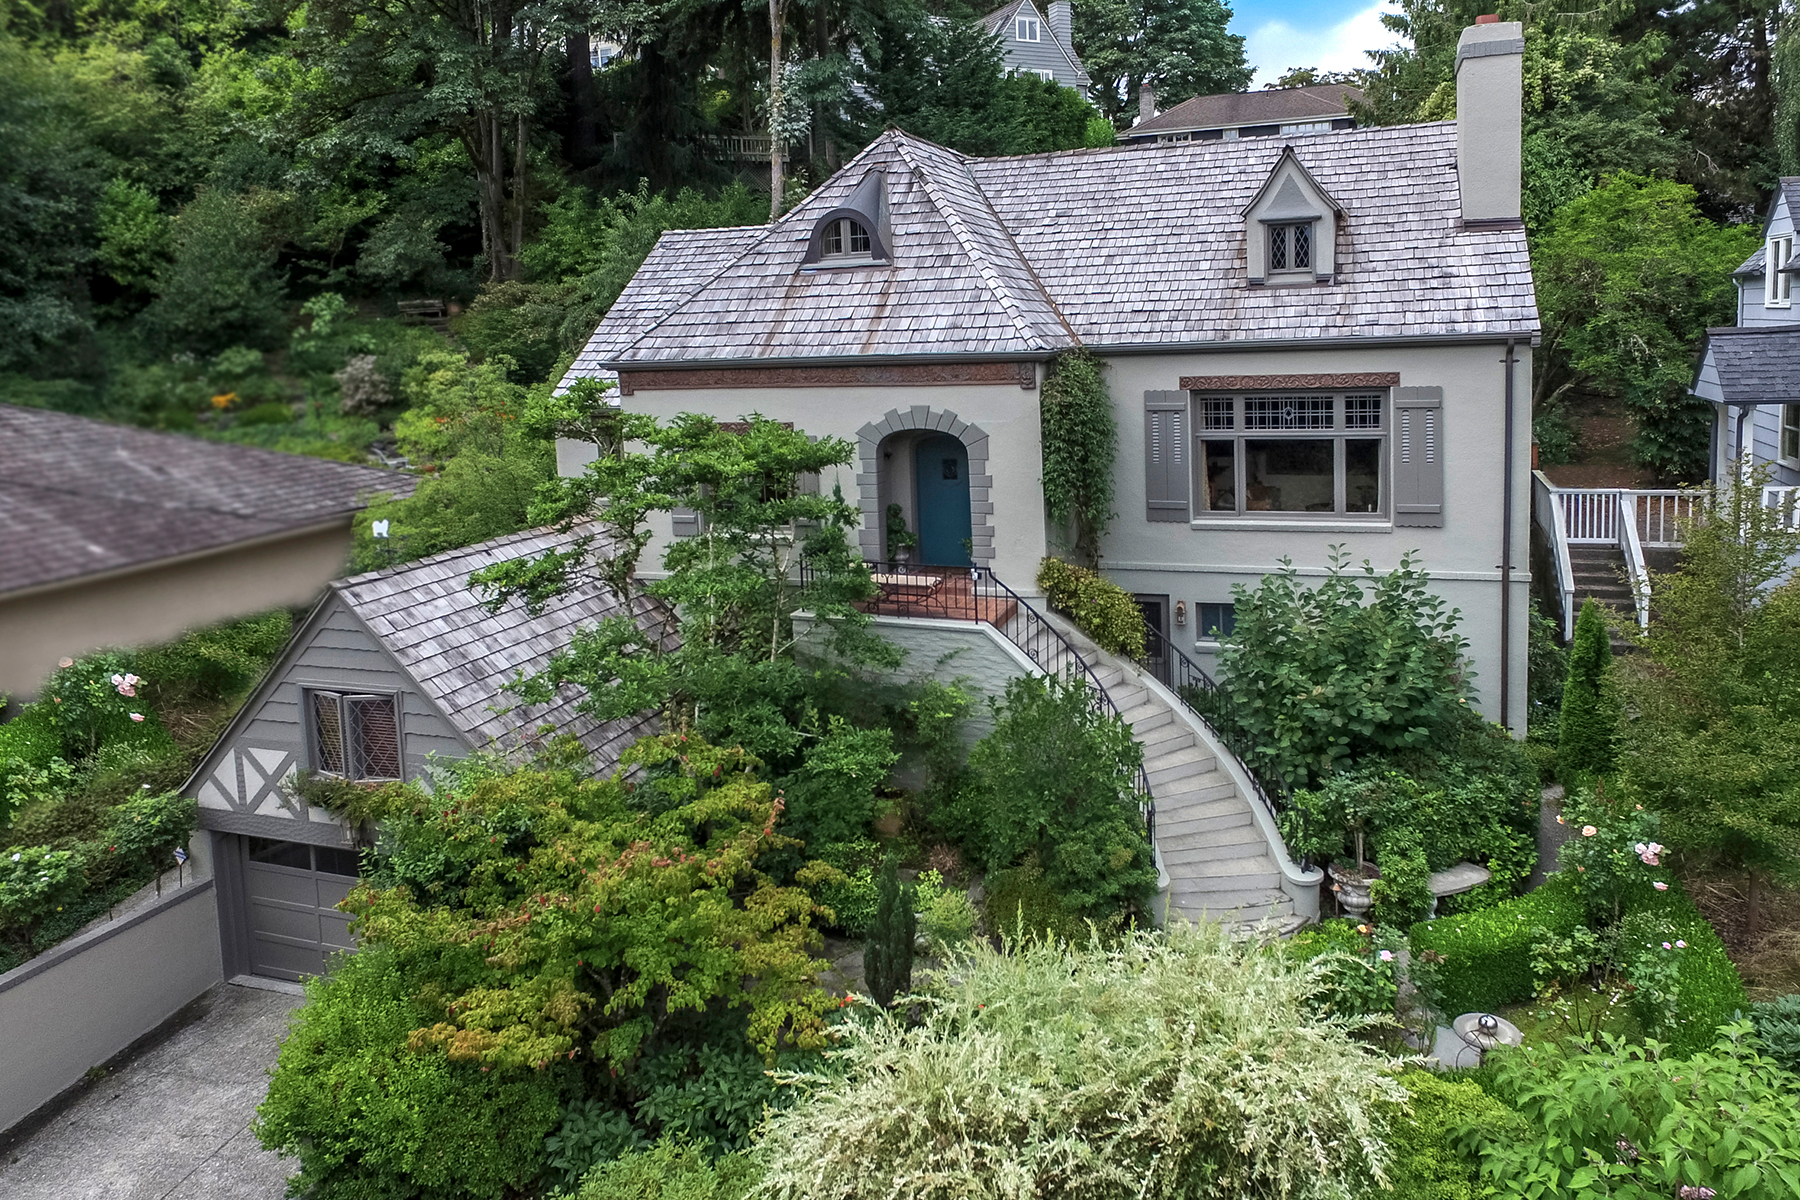 Villa per Vendita alle ore 1930 Denny Blaine Tudor 309 37th Ave E Seattle, Washington, 98112 Stati Uniti